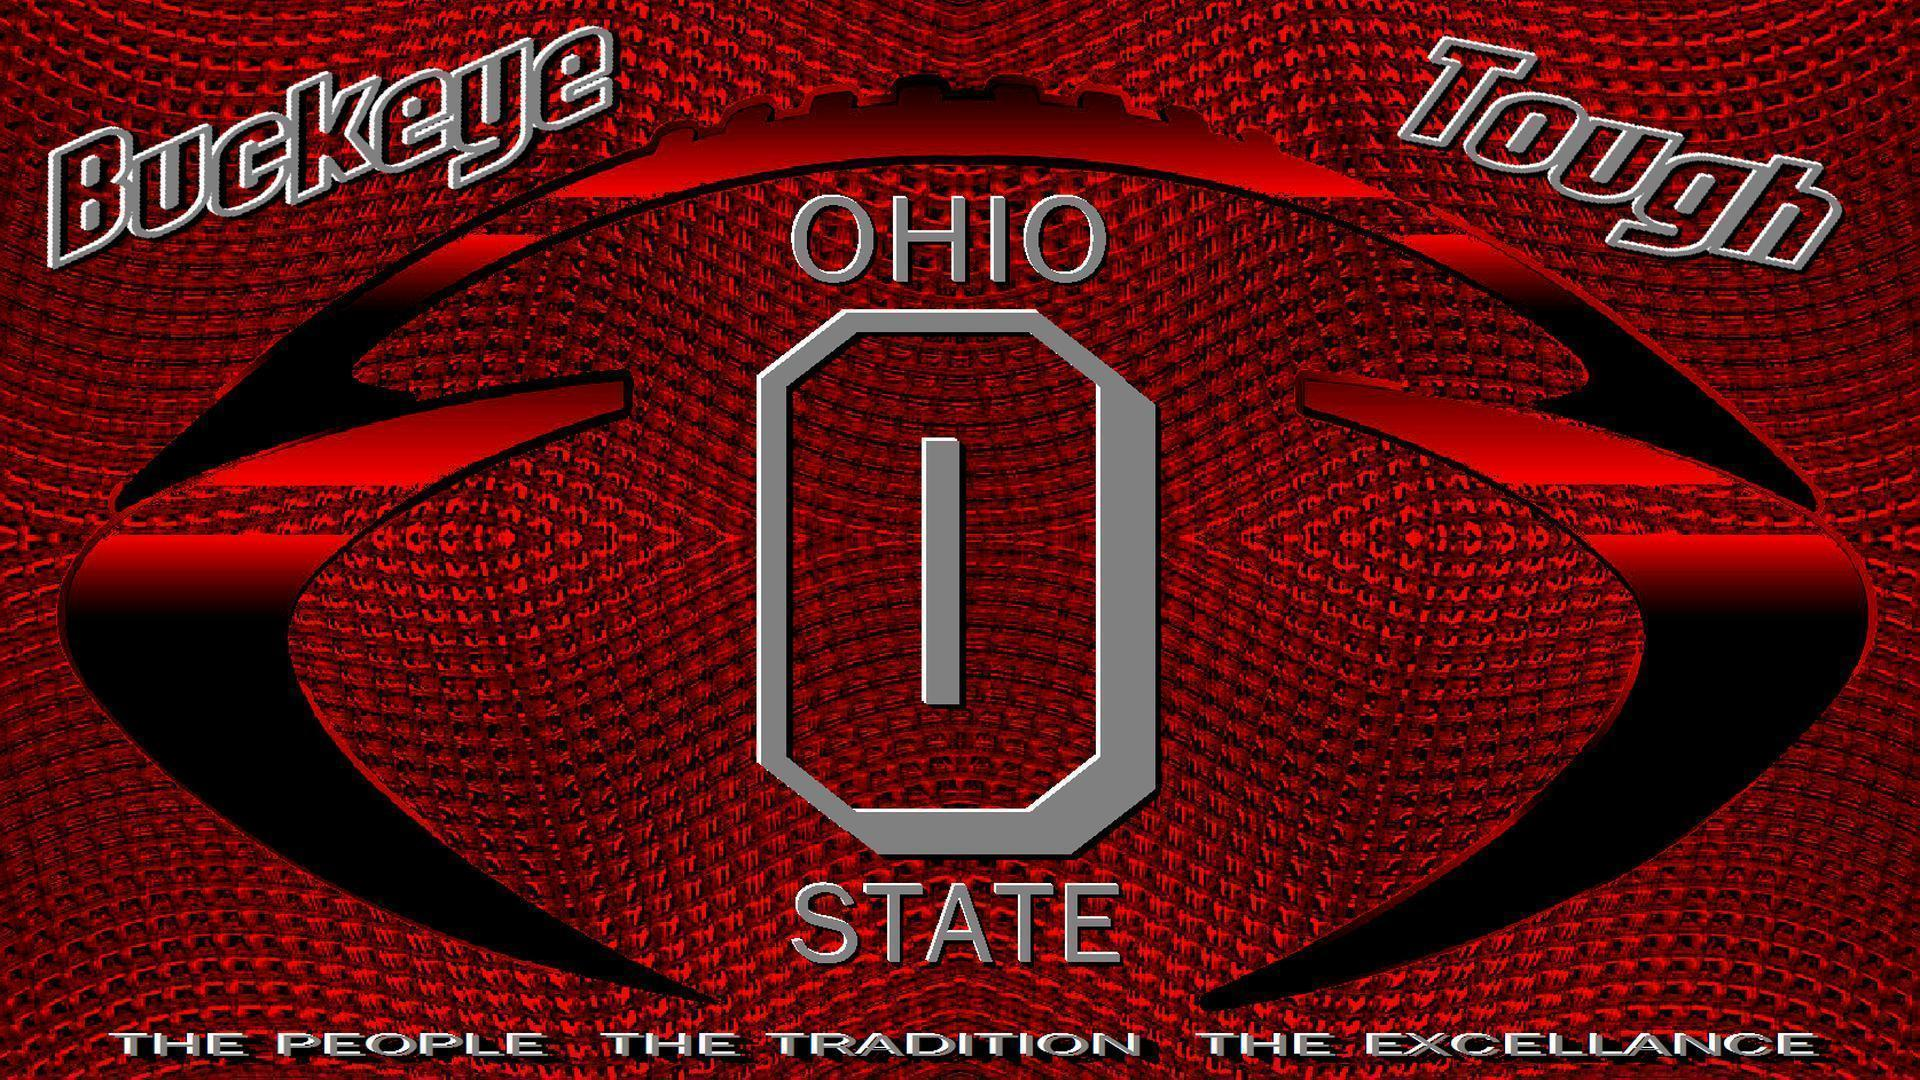 Football Wallpapers Hd For Android Ohio State Football Backgrounds Wallpaper Cave